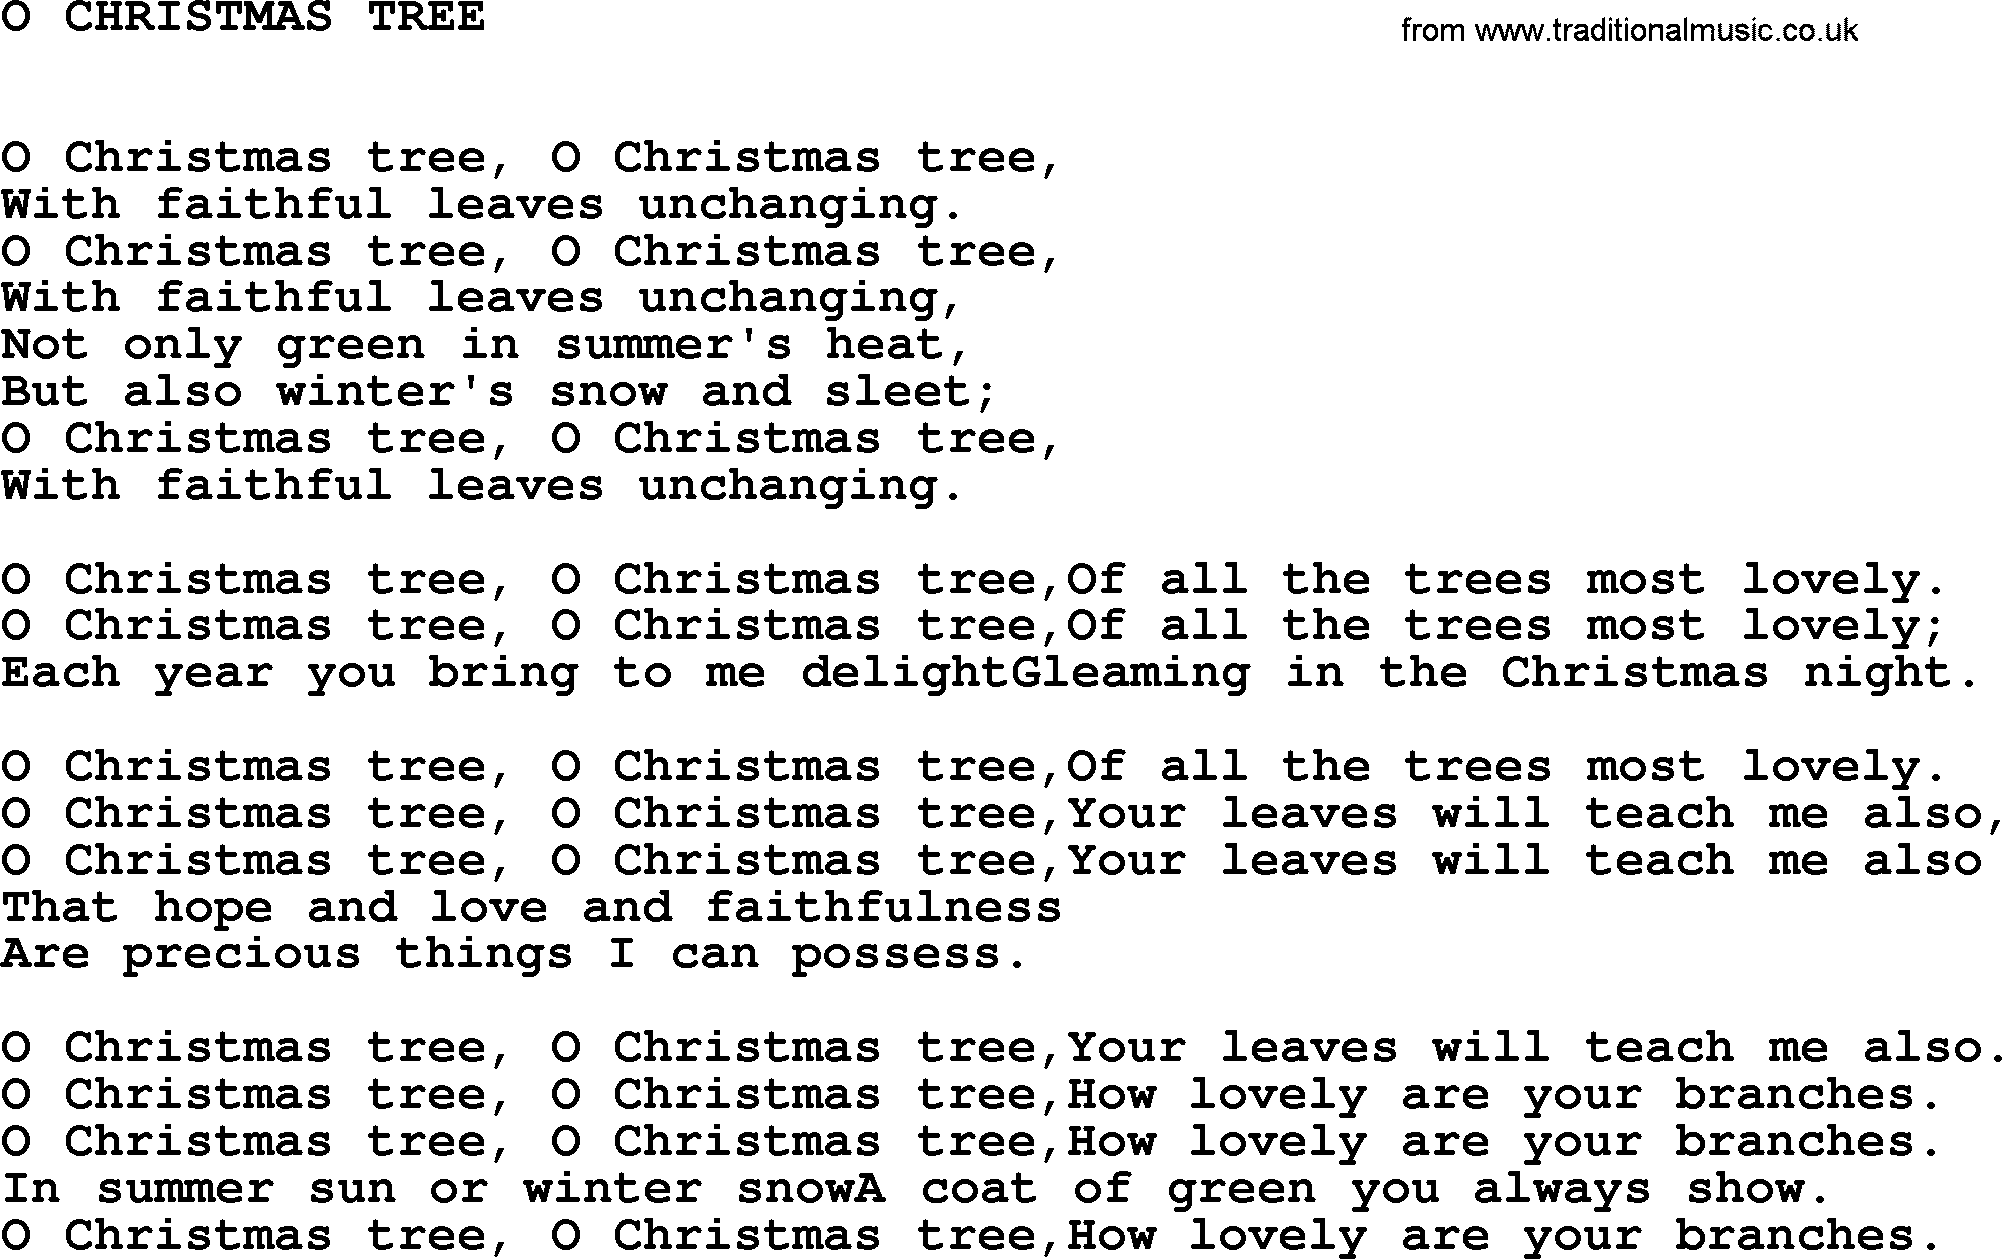 johnny cash song o christmas treetxt lyrics - Oh Christmas Tree How Lovely Are Your Branches Lyrics